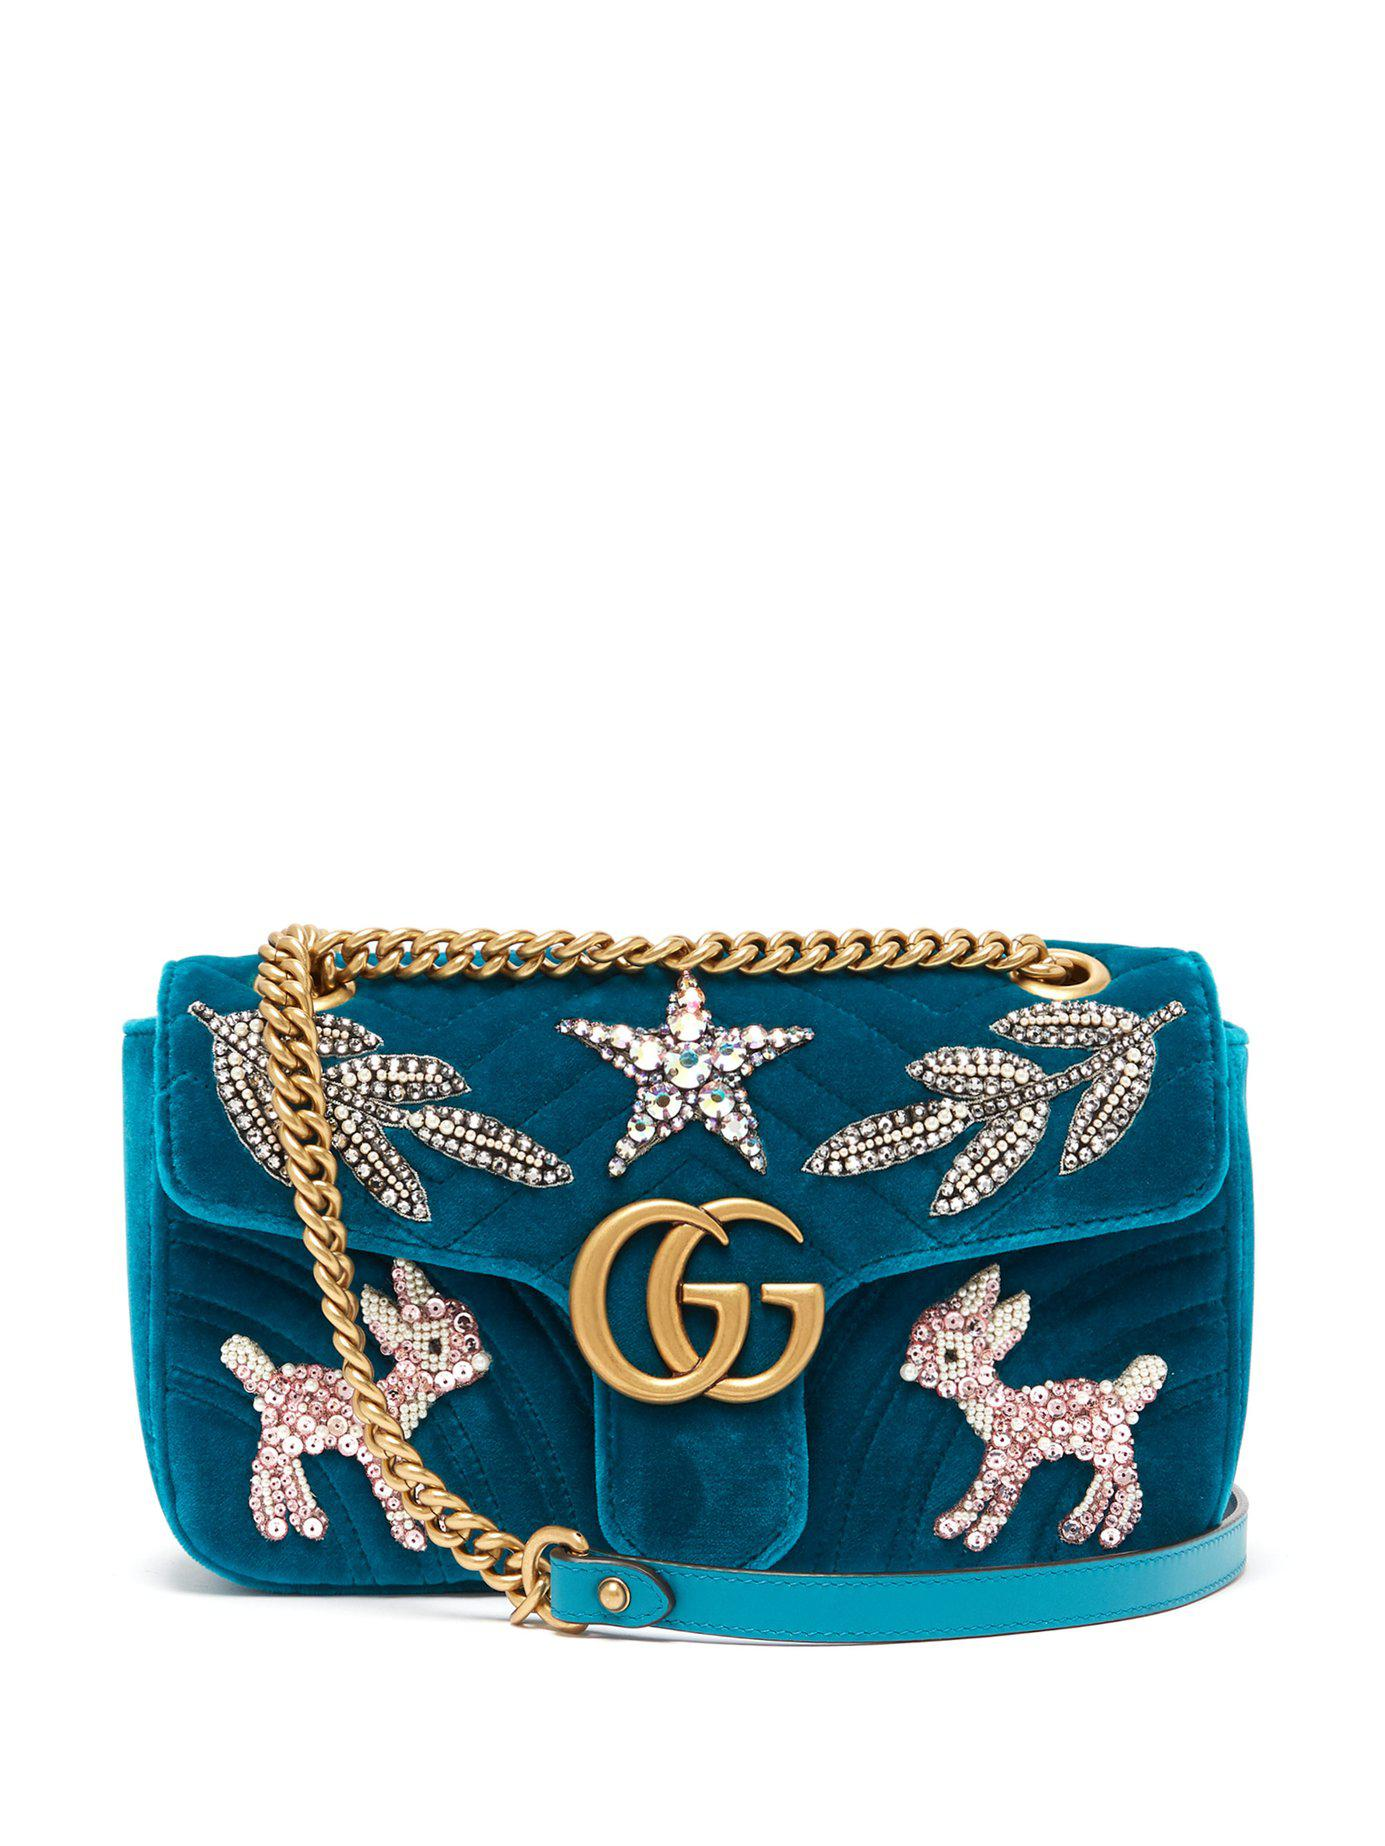 2384a097b9c Lyst - Gucci Gg Marmont Small Embellished Velvet Cross Body Bag in Blue